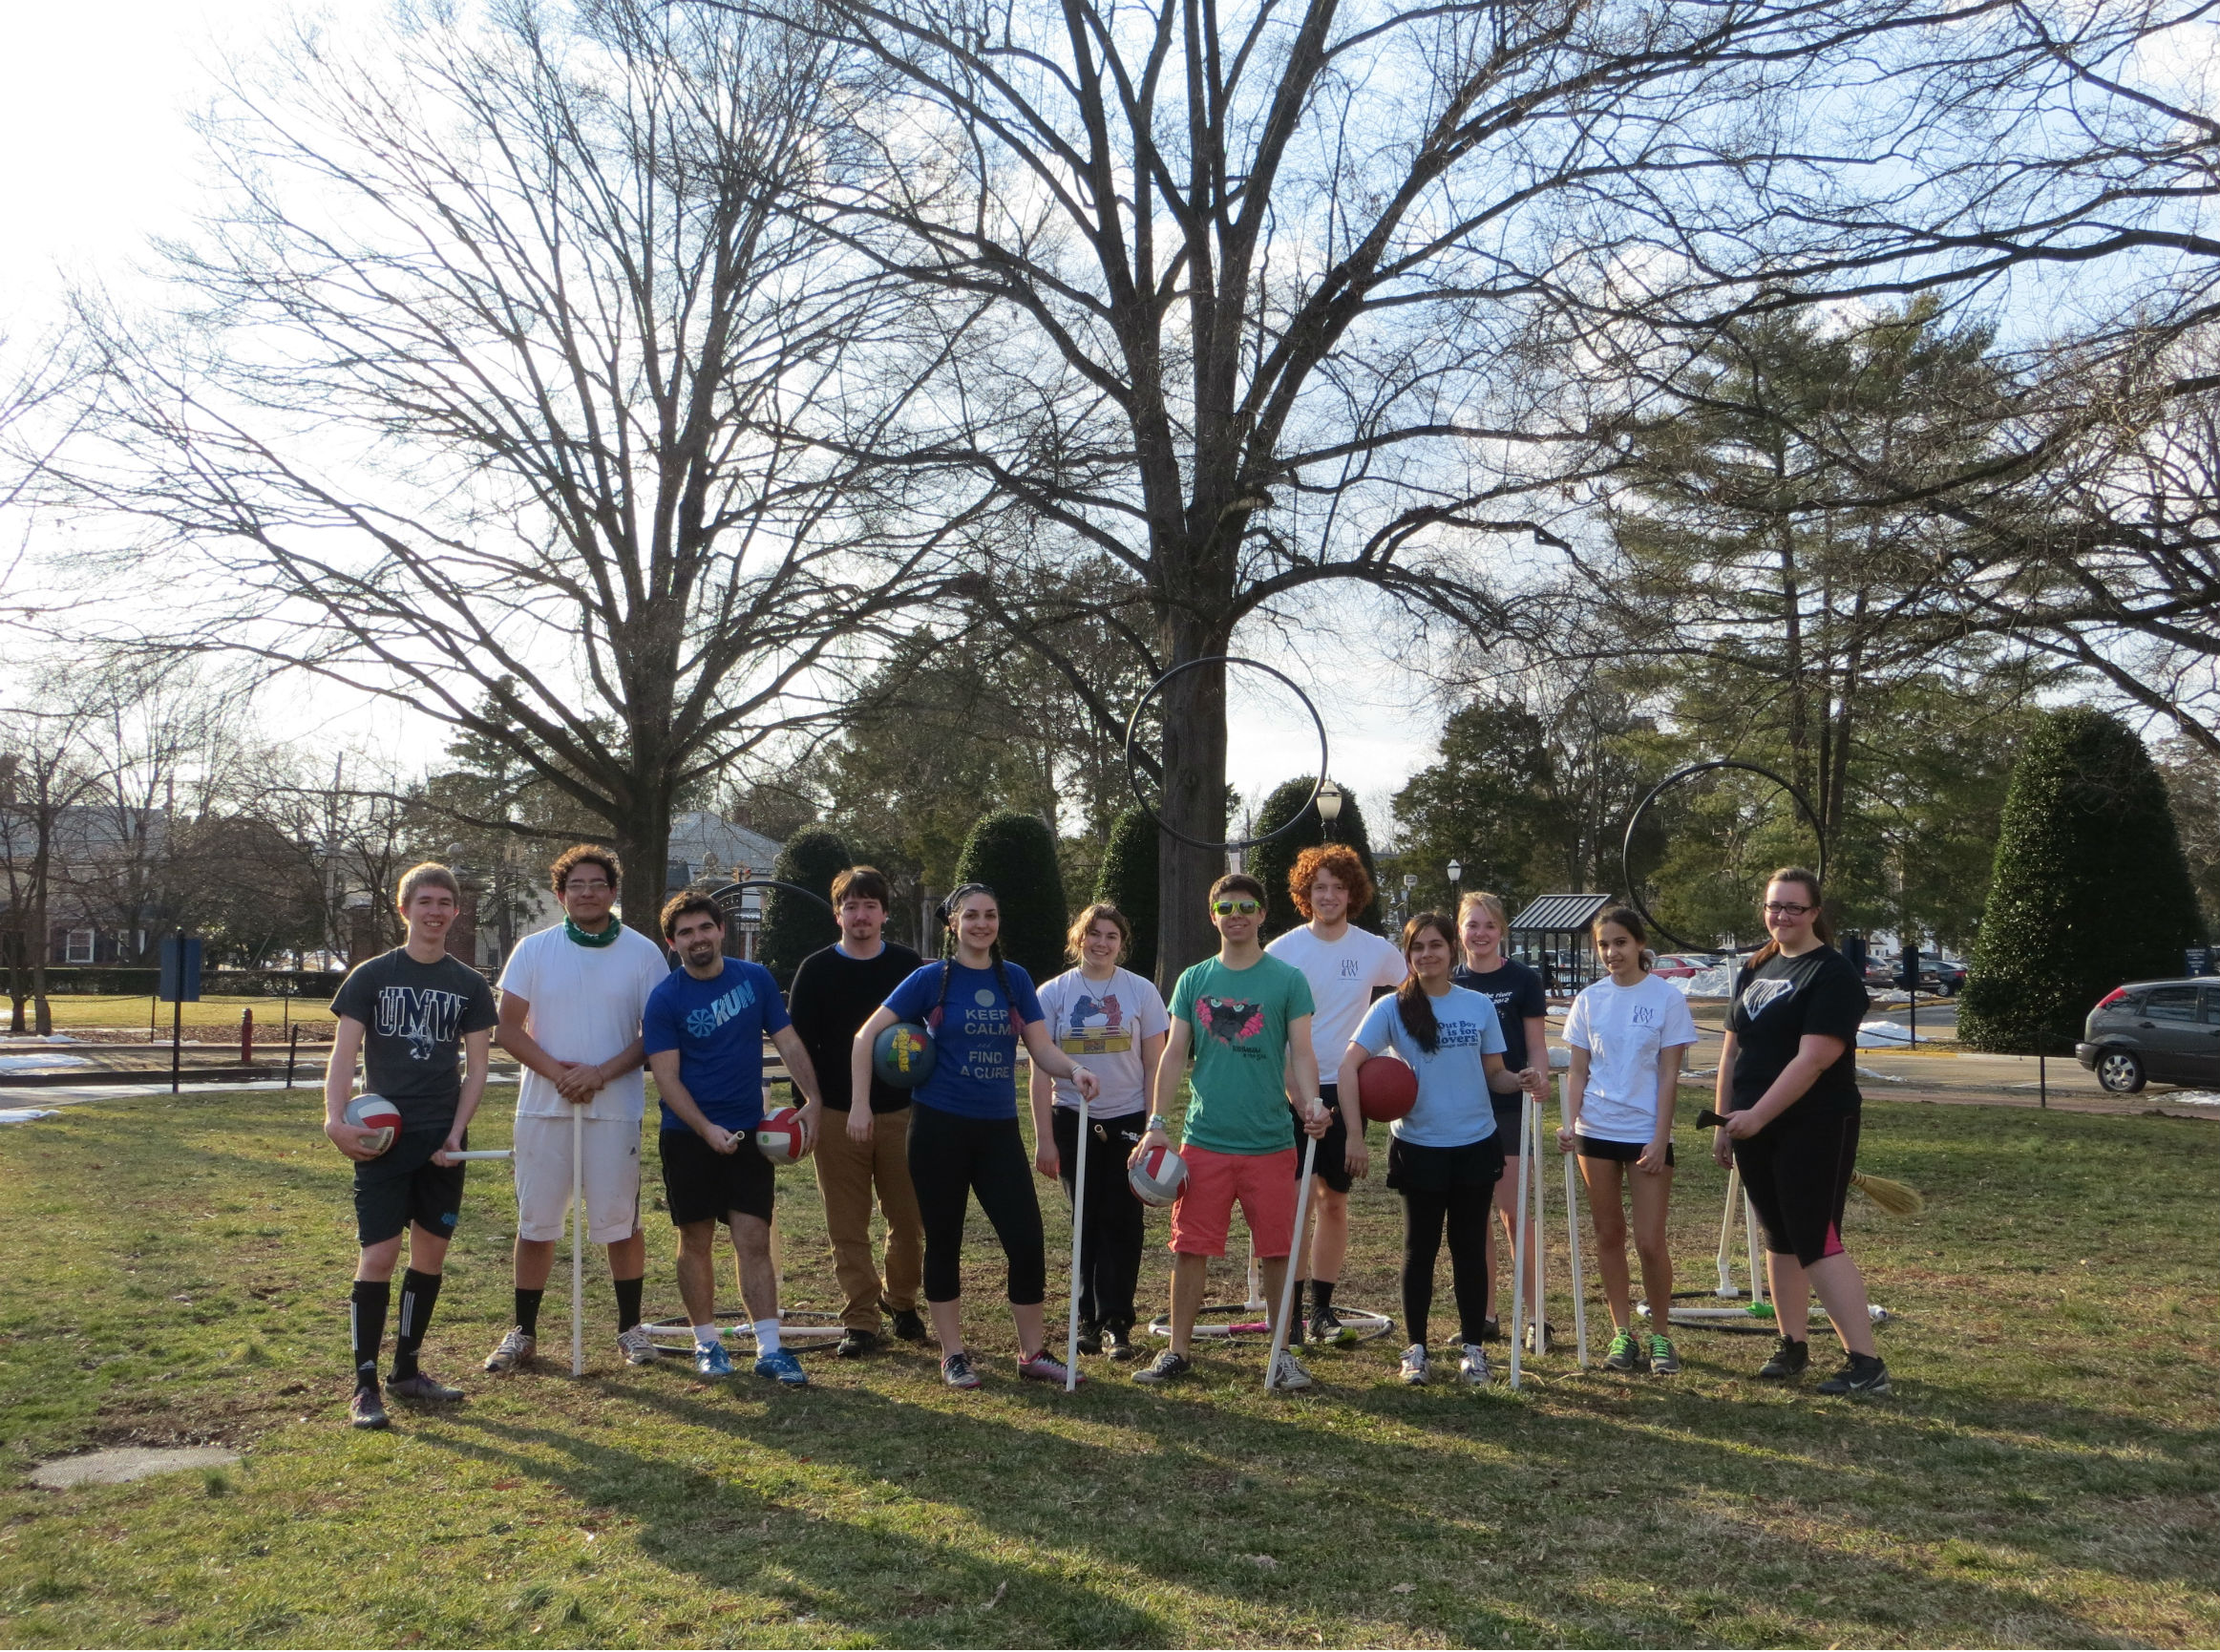 Team Now - Quidditch 2014 Resized 1